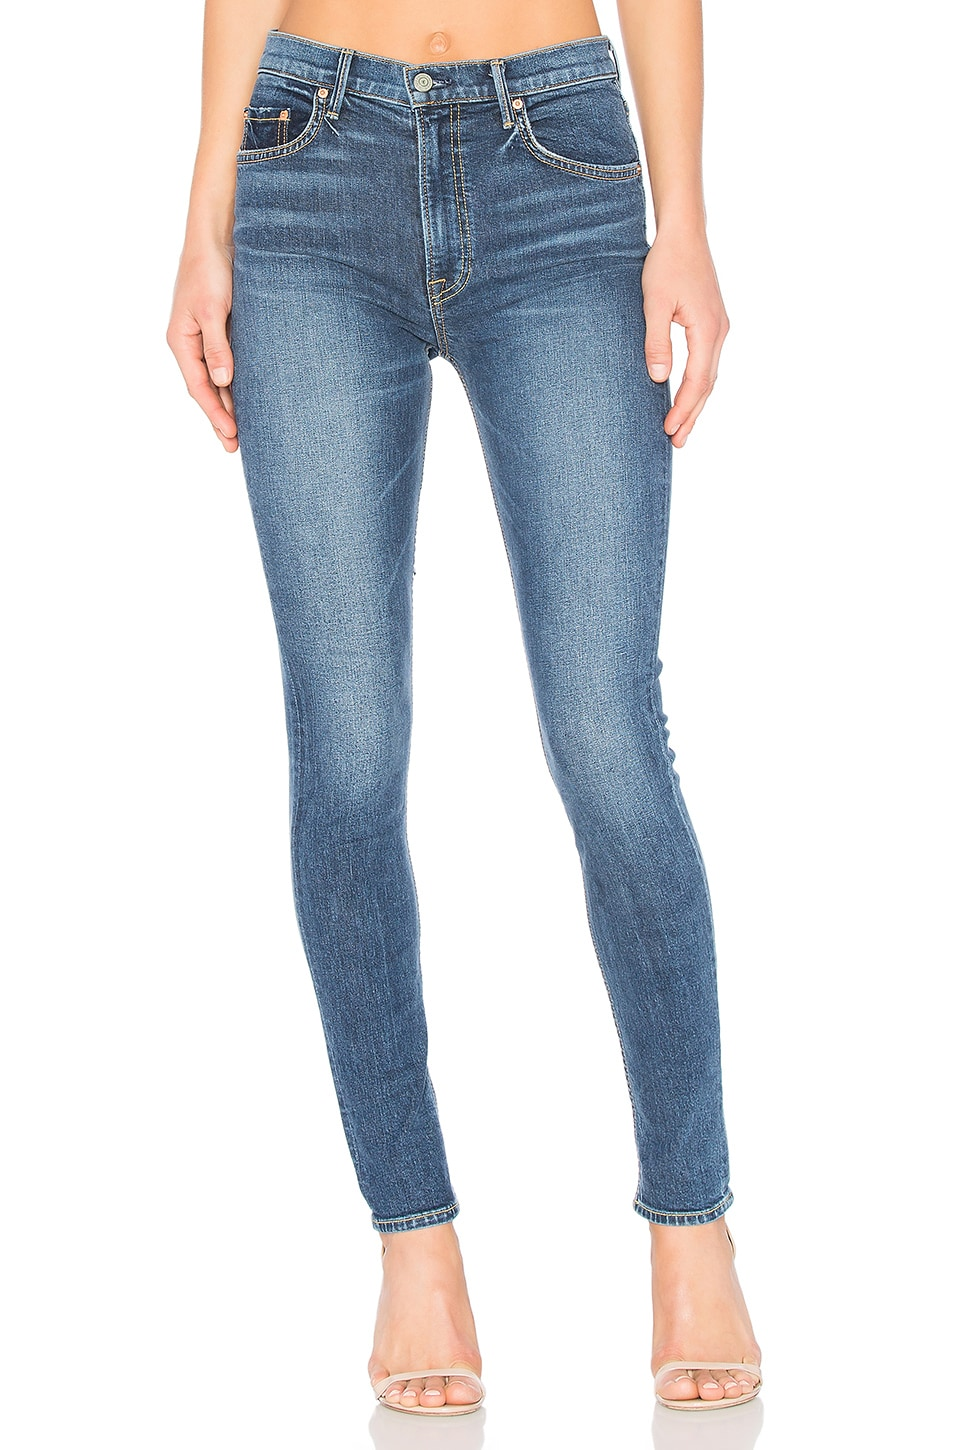 GRLFRND x REVOLVE PETITE Kendall Super Stretch High-Rise Skinny Jean in No More Tears